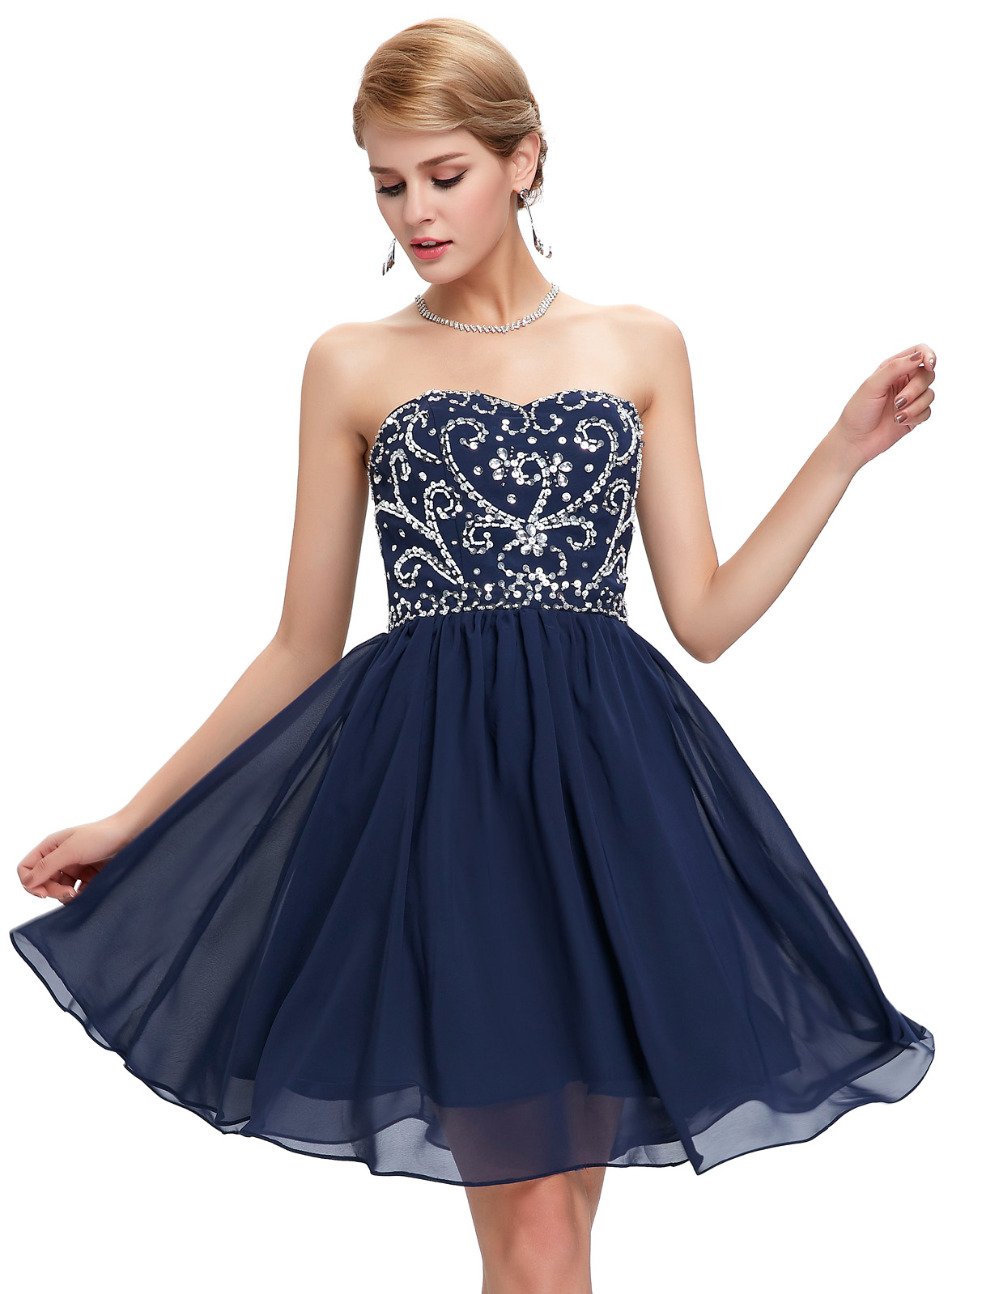 Aliexpress.com : Buy black Navy blue short prom dresses 2016 new ...